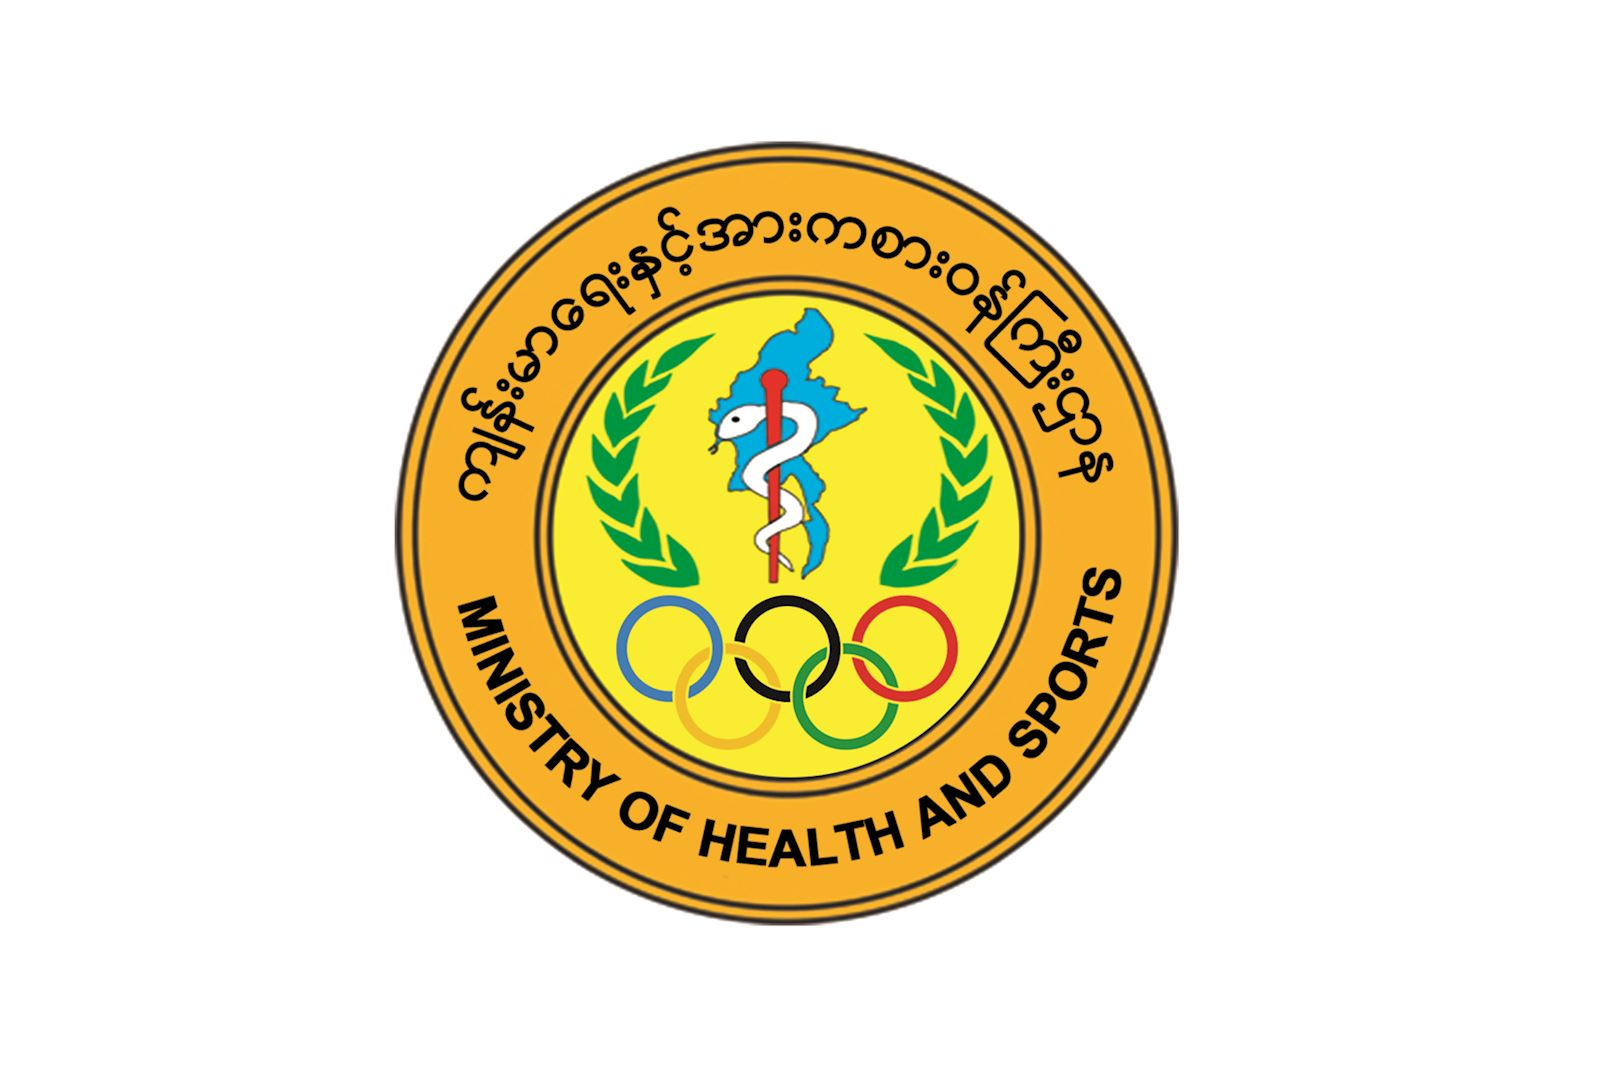 MINISTRY OF HEALTH AND SPORTS